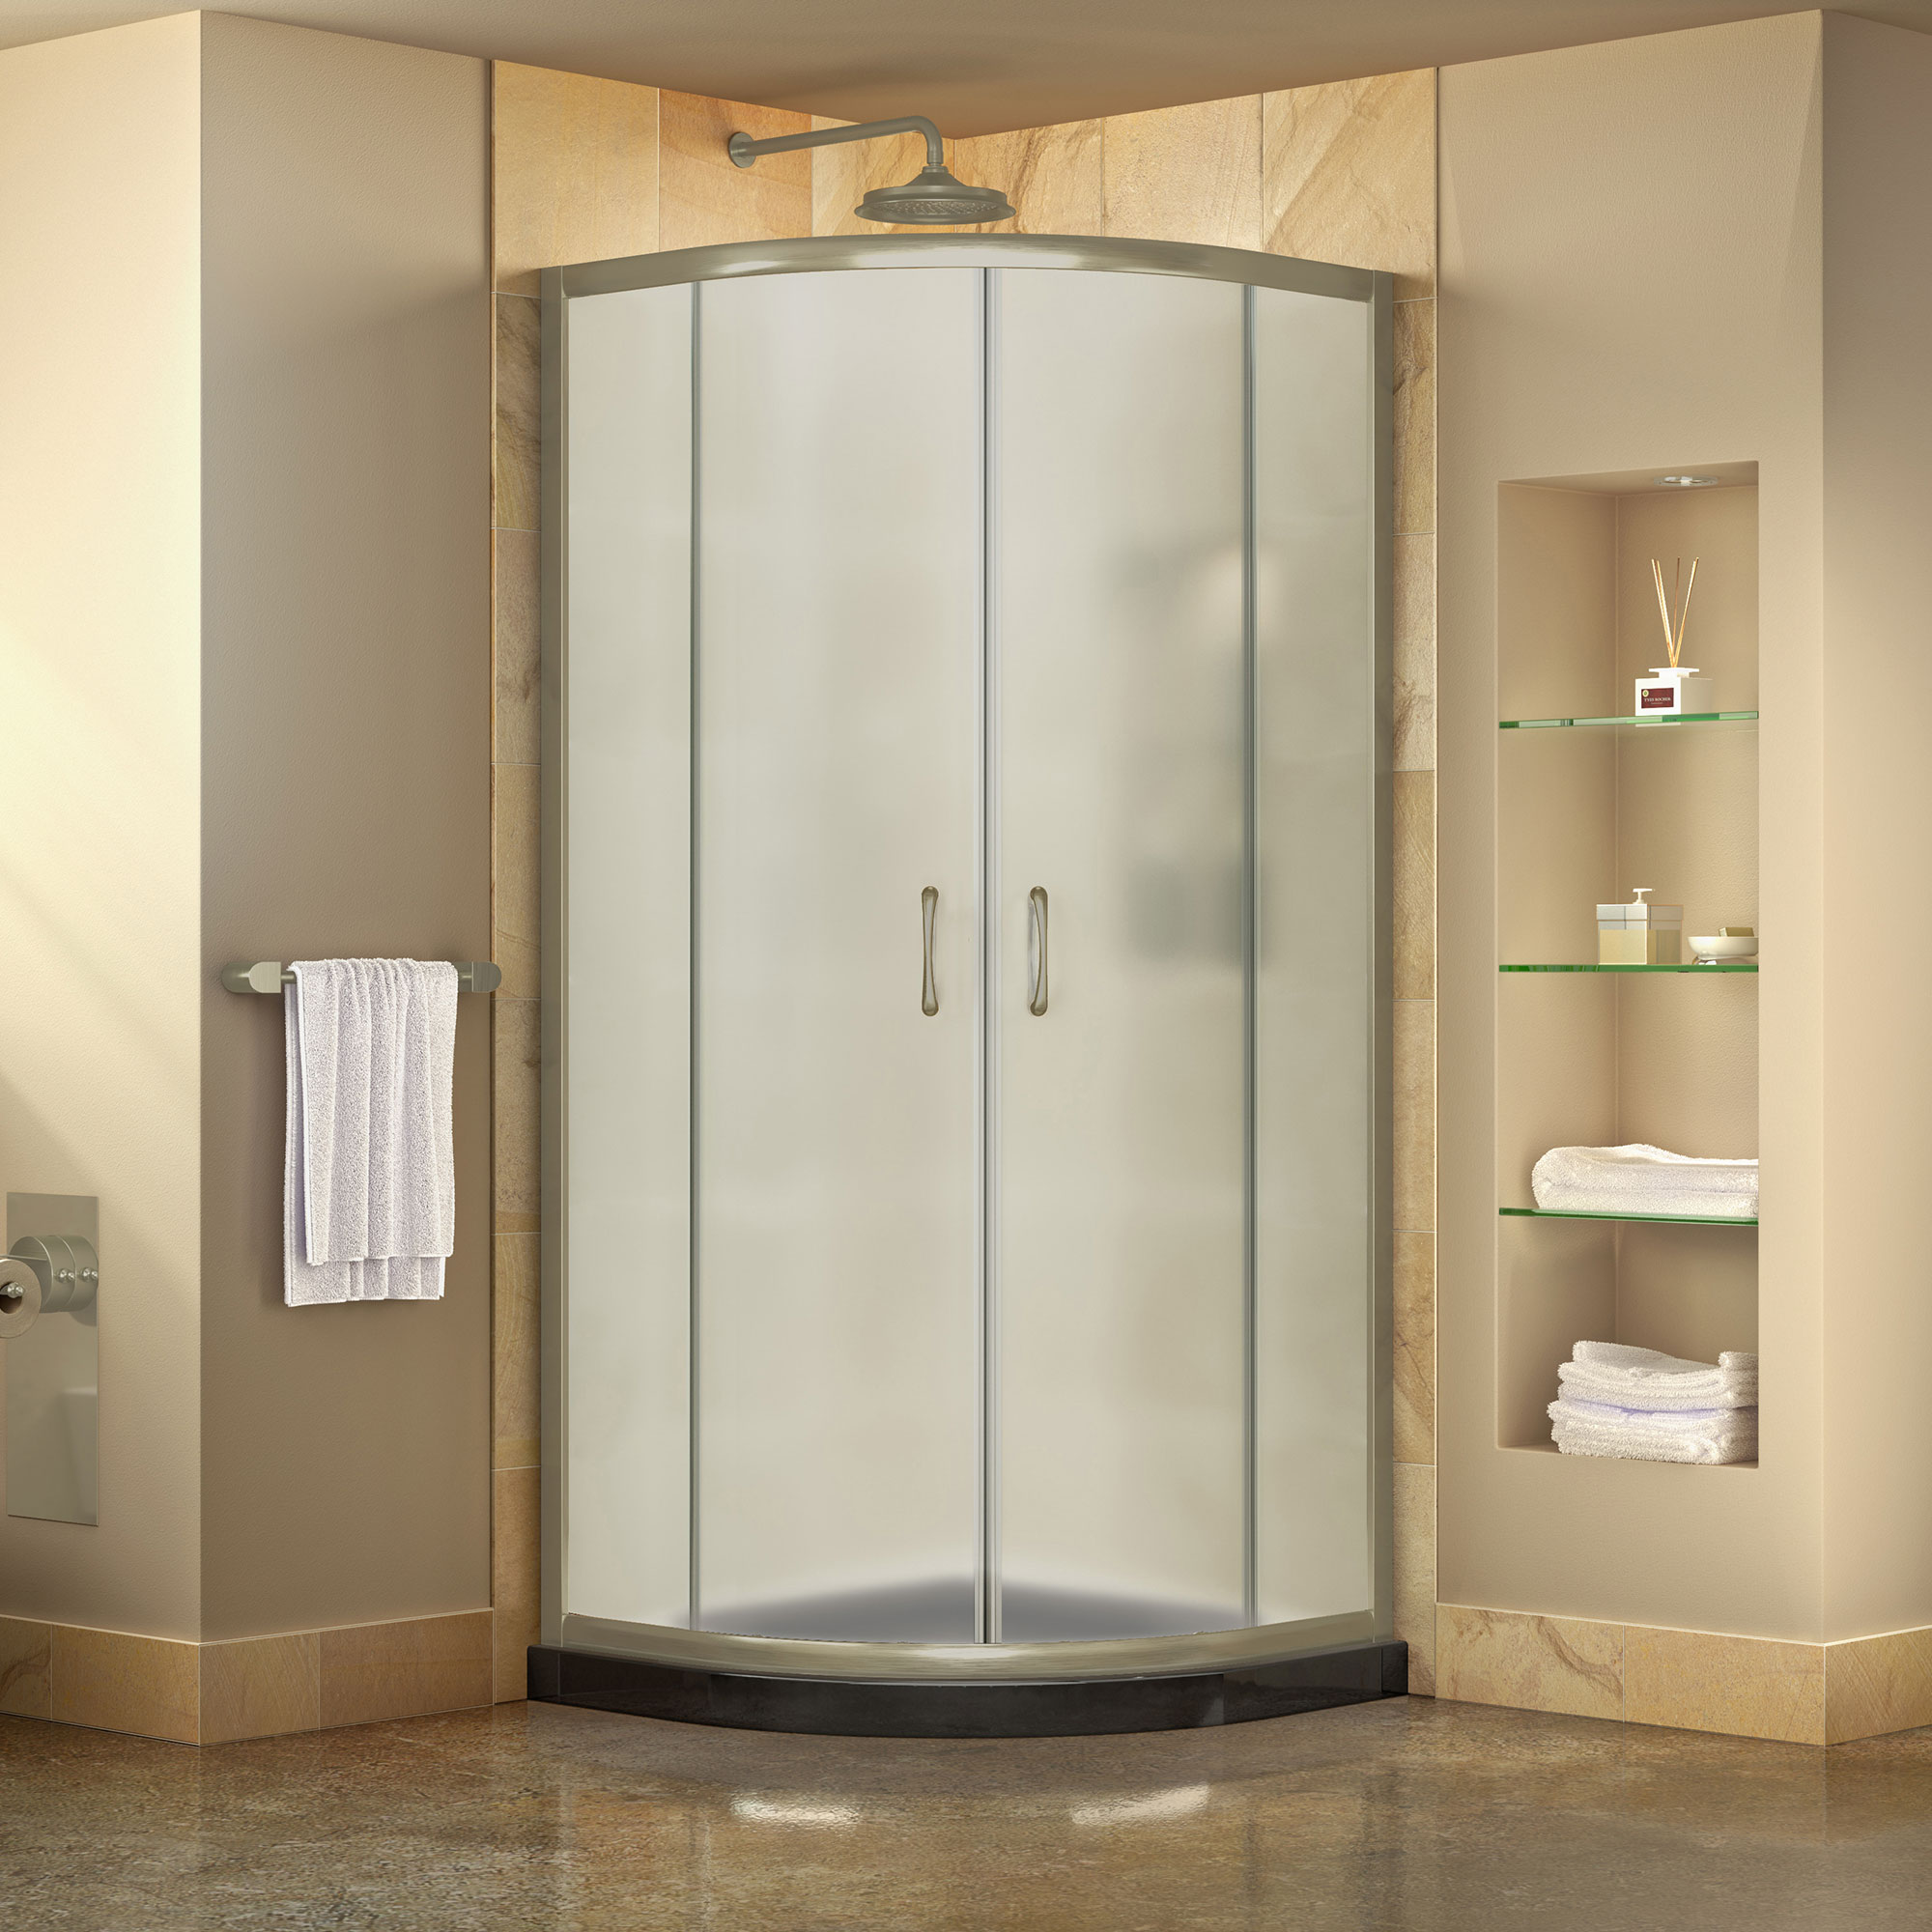 DreamLine Prime 33 in. x 74 3/4 in. Semi-Frameless Frosted Glass Sliding Shower Enclosure in Brushed Nickel with Black Base Kit